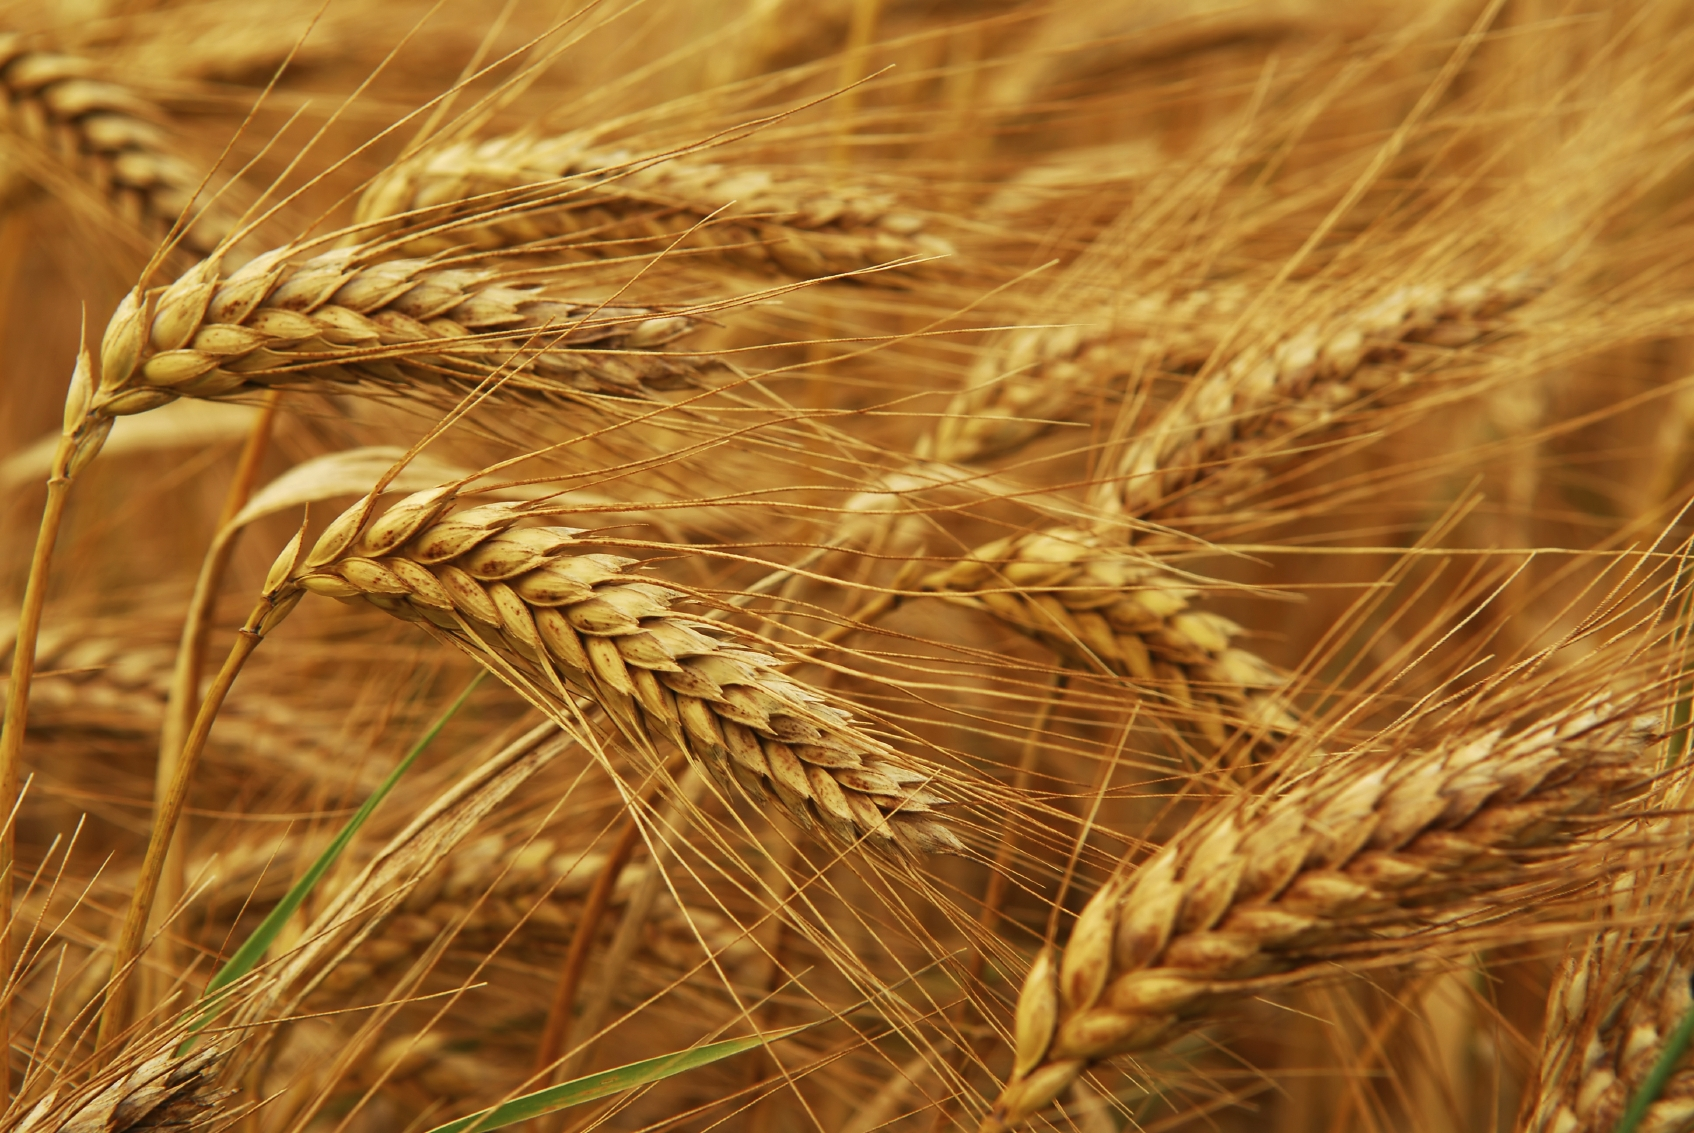 Golden wheat growing in a farm field, closeup on ears